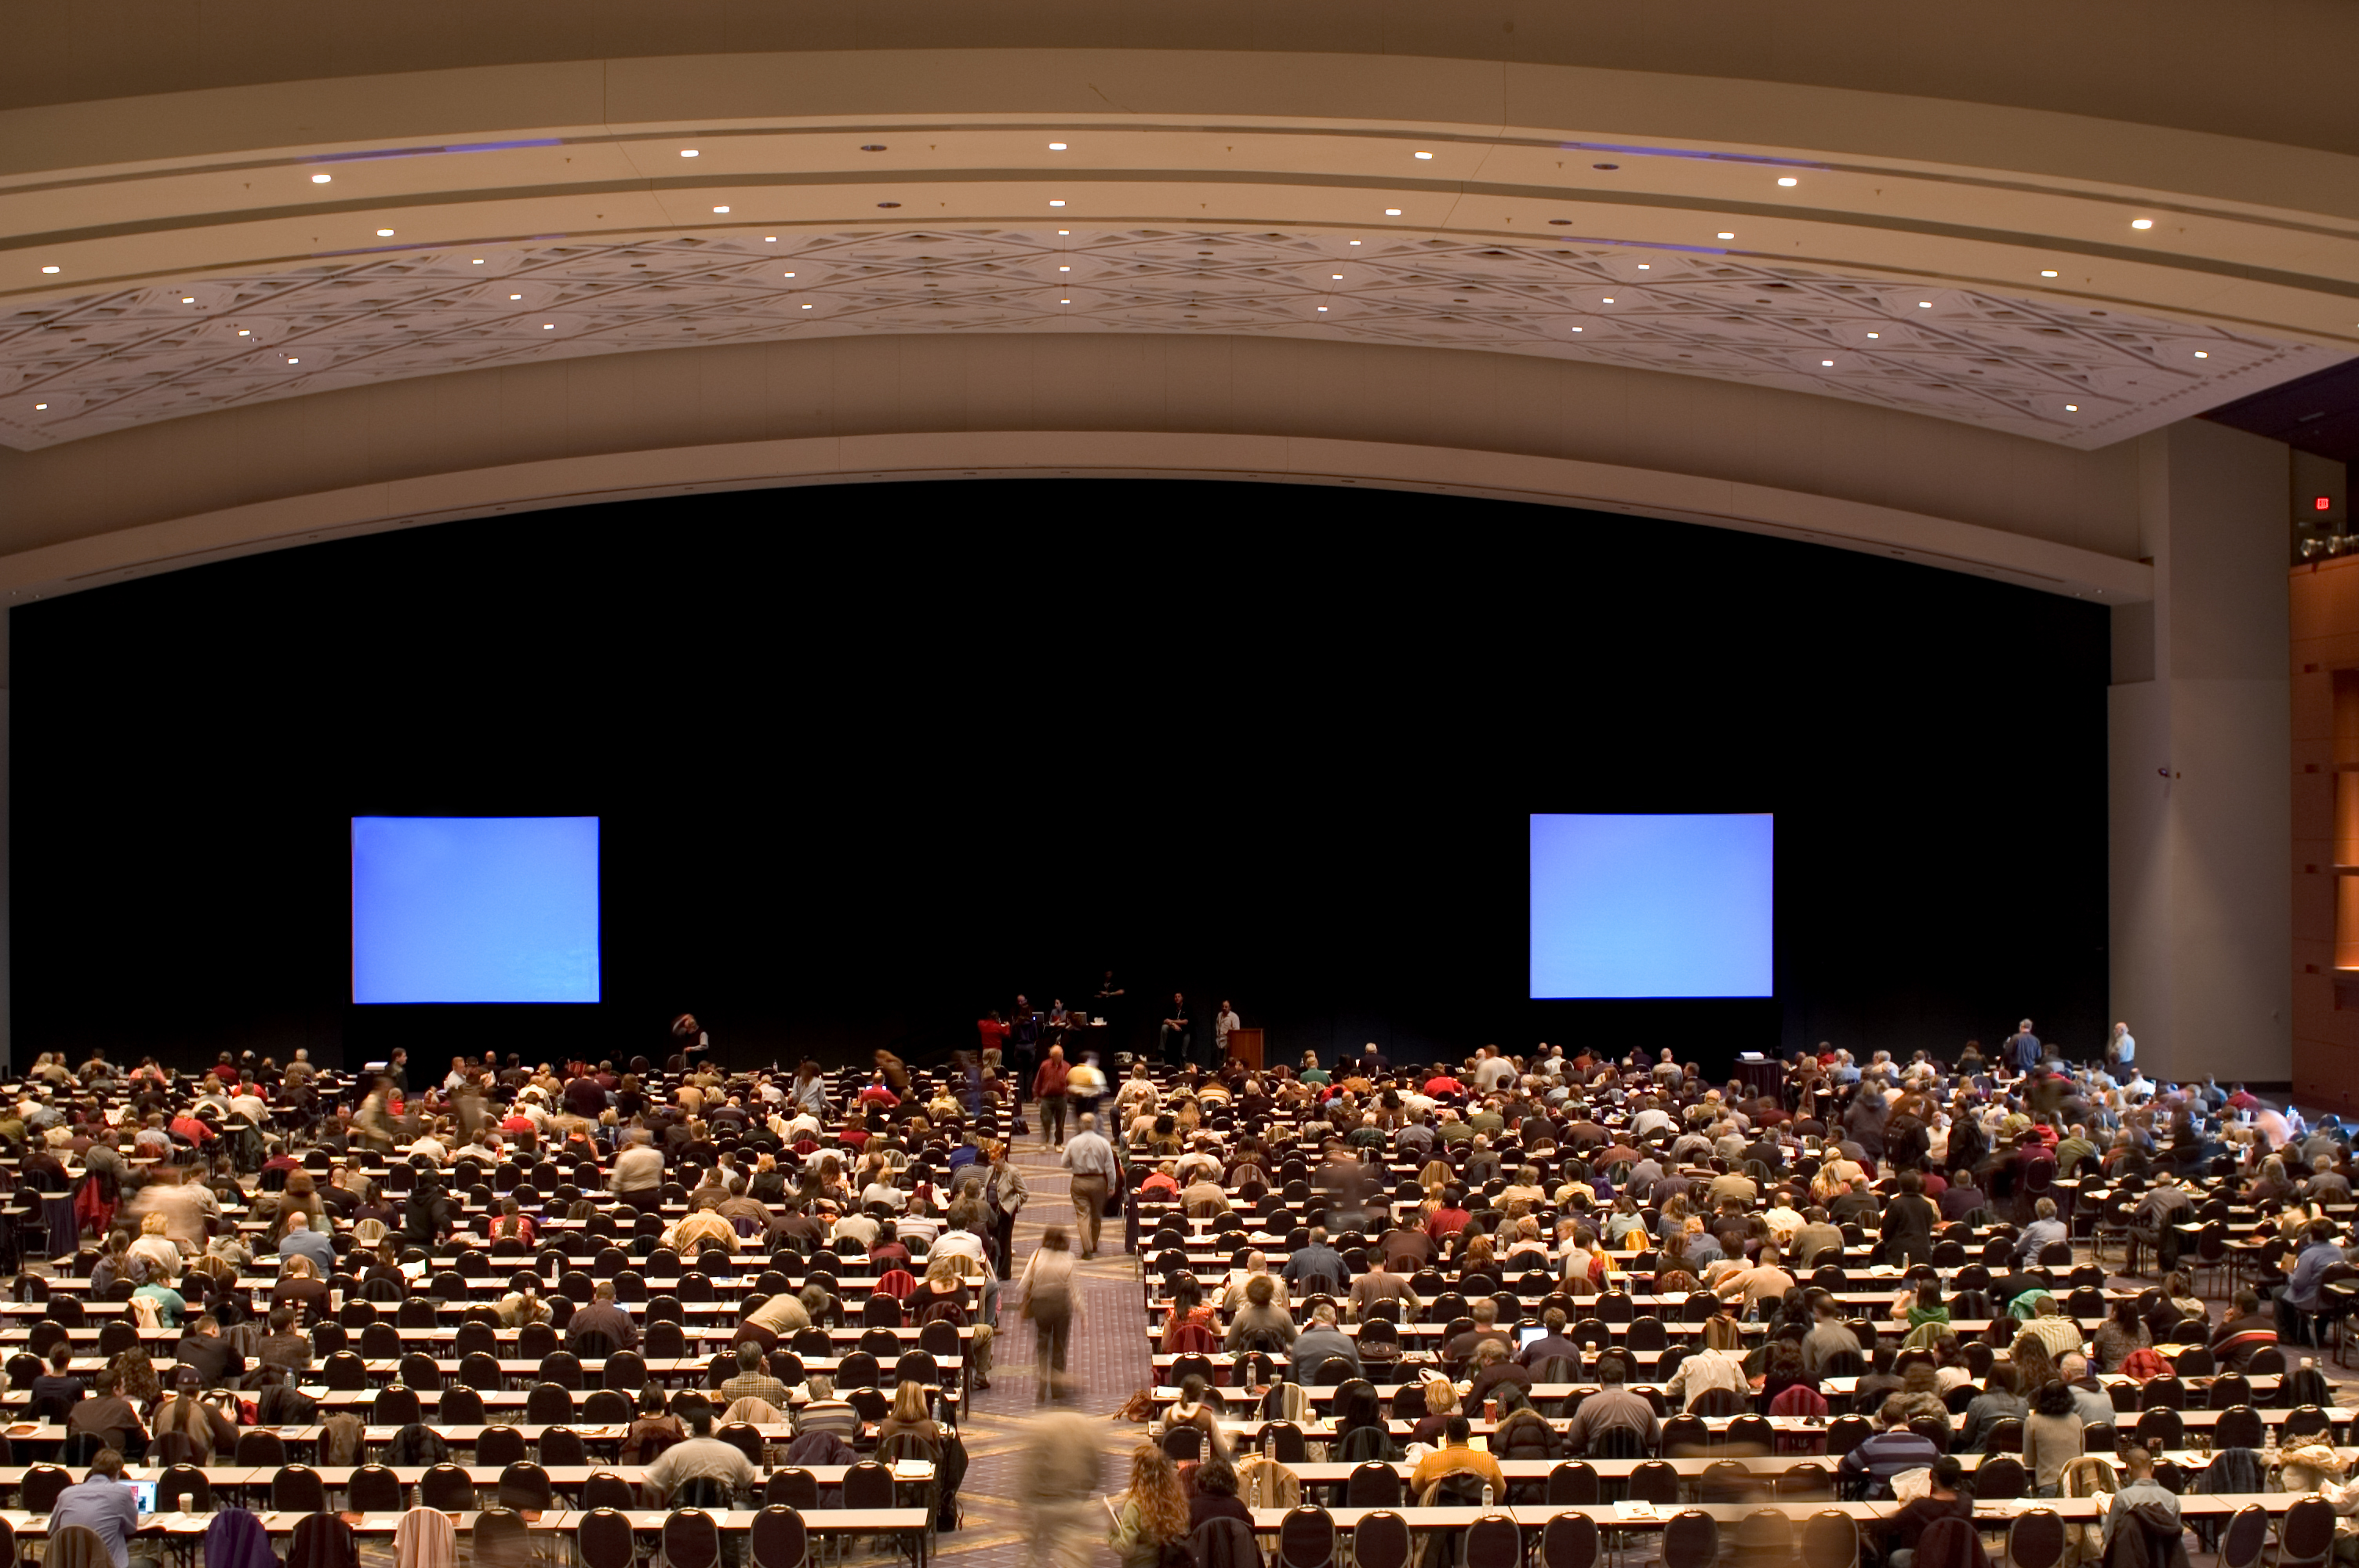 Attendees social distancing while attending corporate meeting | Global agency, BCD Meetings & Events